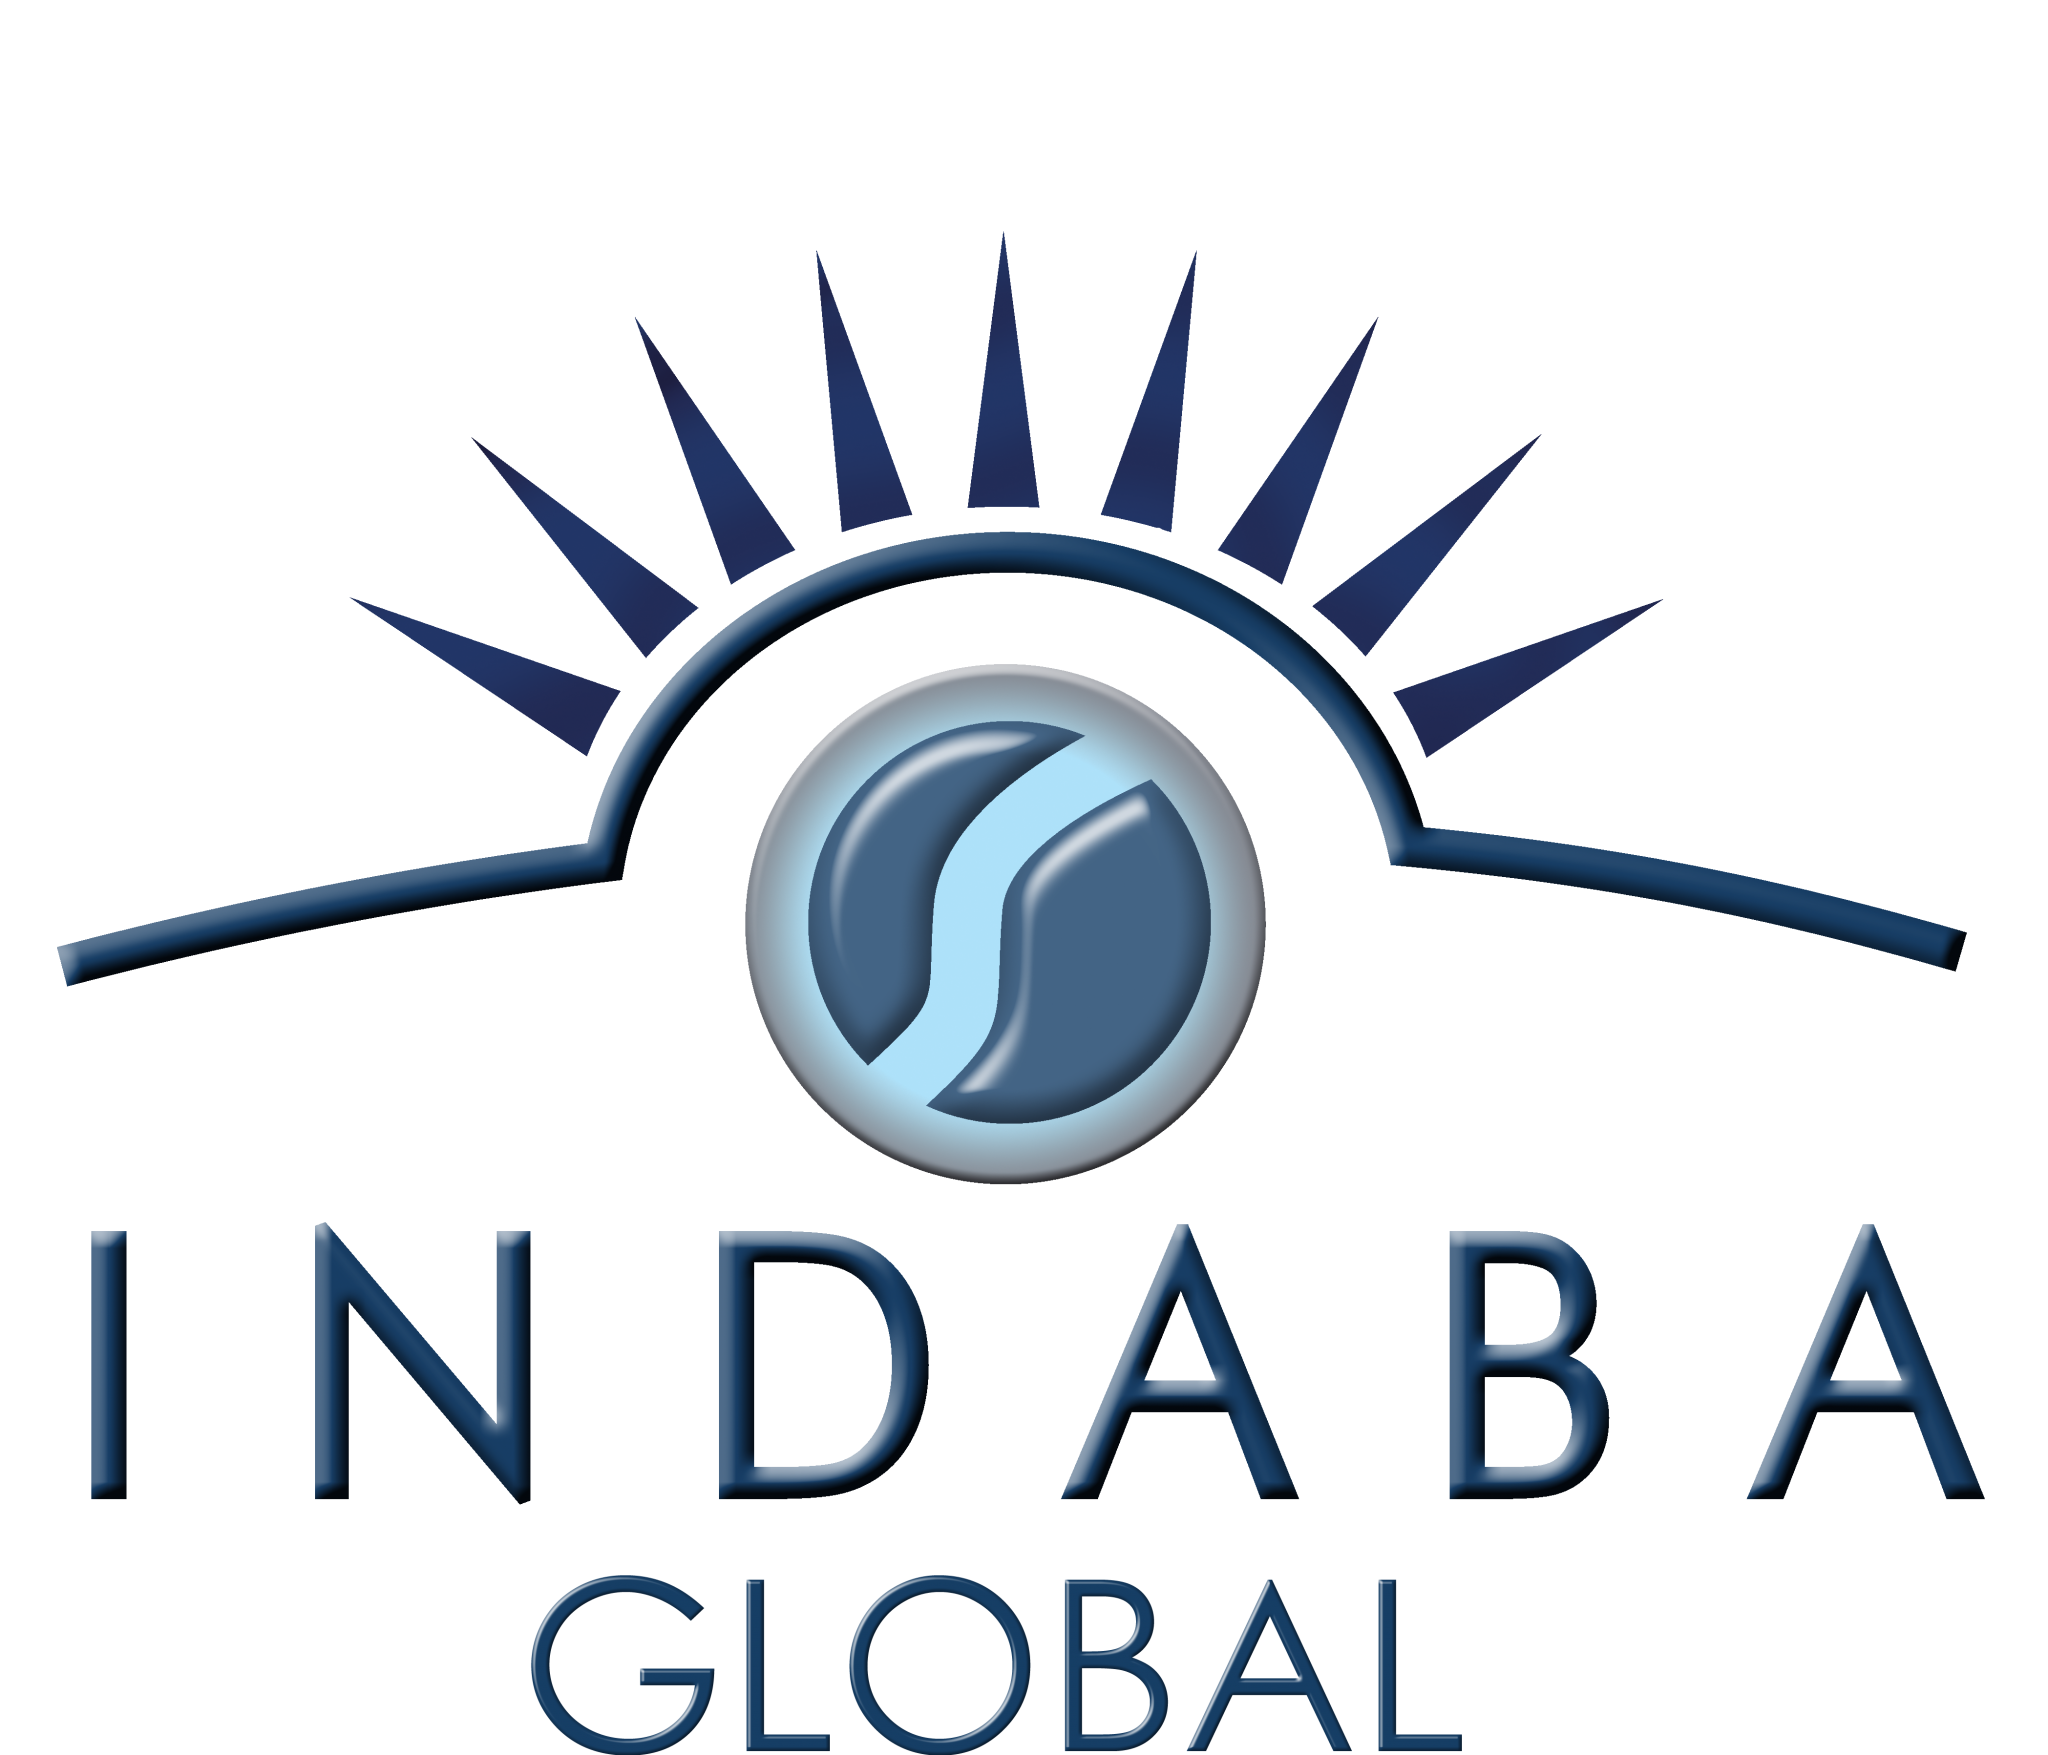 logo for Indaba Global Coaching LLC Spring 2017 Update